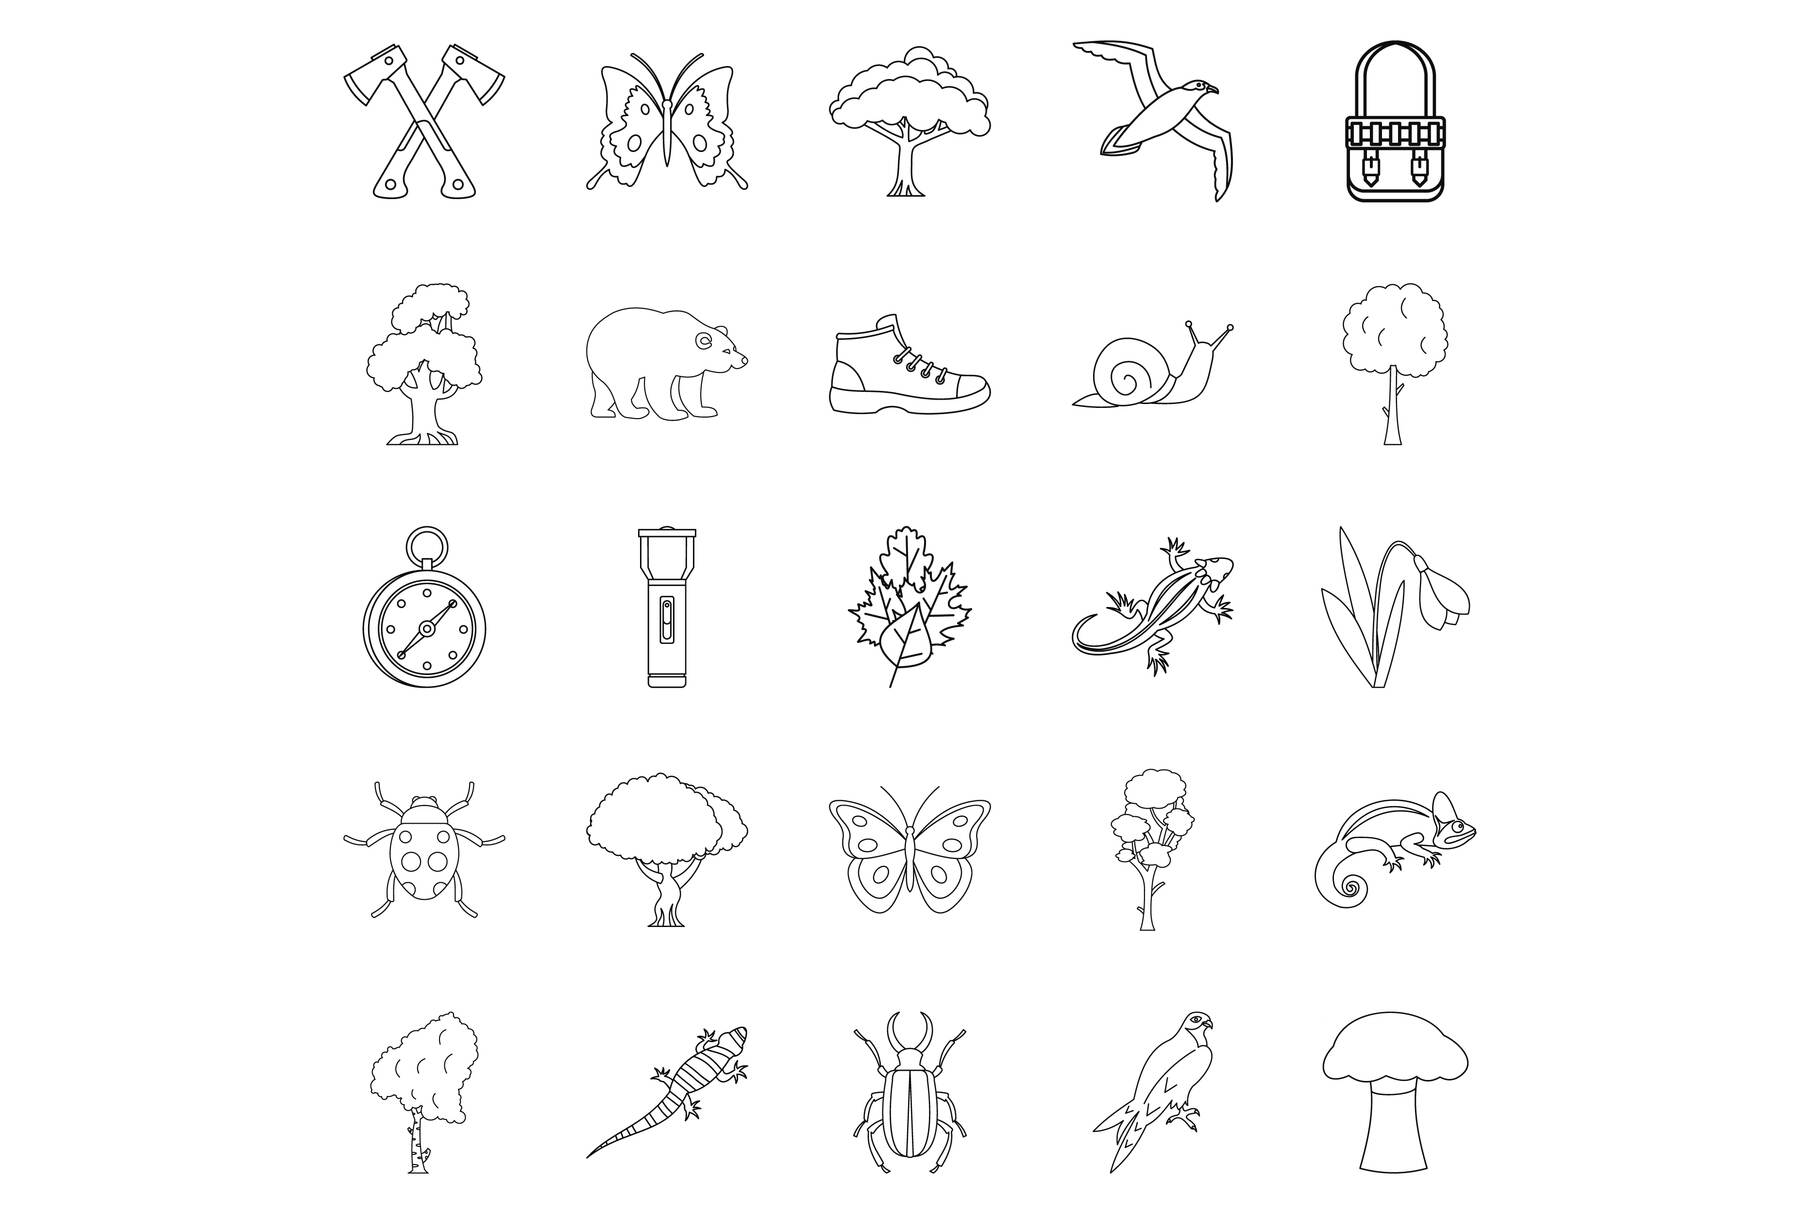 Dangerous territory icons set, outline style example image 1